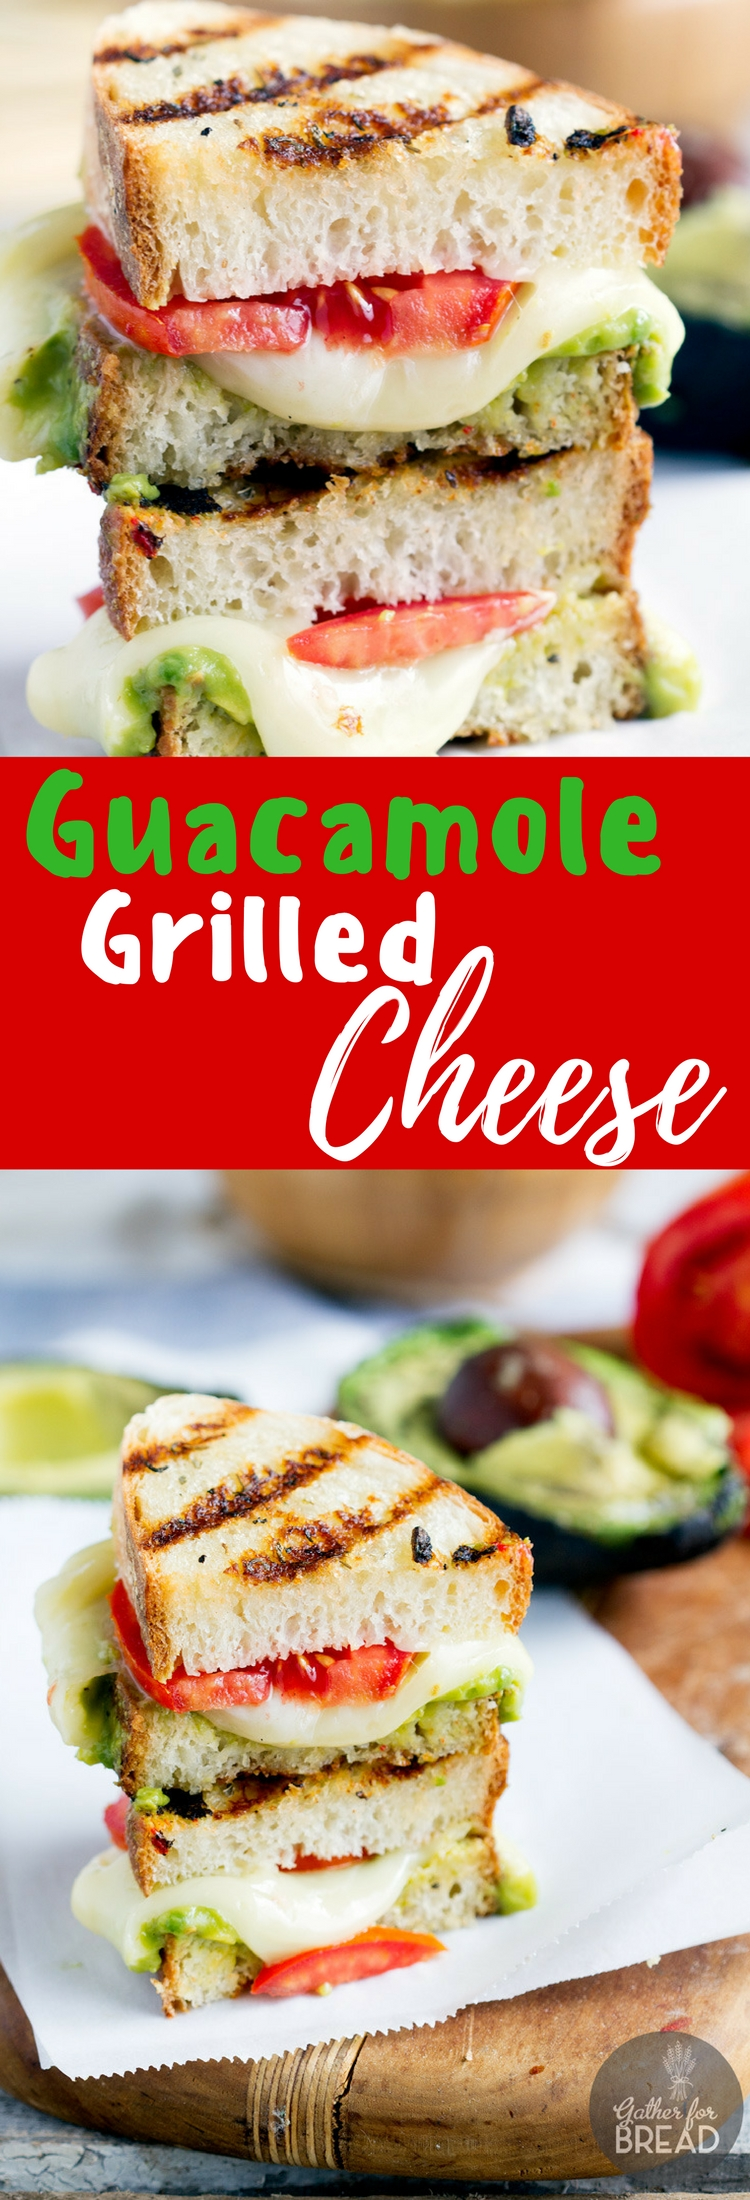 Guacamole Grilled Cheese - Grilled cheese sandwich bursting with gooey cheese and guacamole. This recipe makes a whole new way to enjoy a grilled cheese sandwich. Delicious!